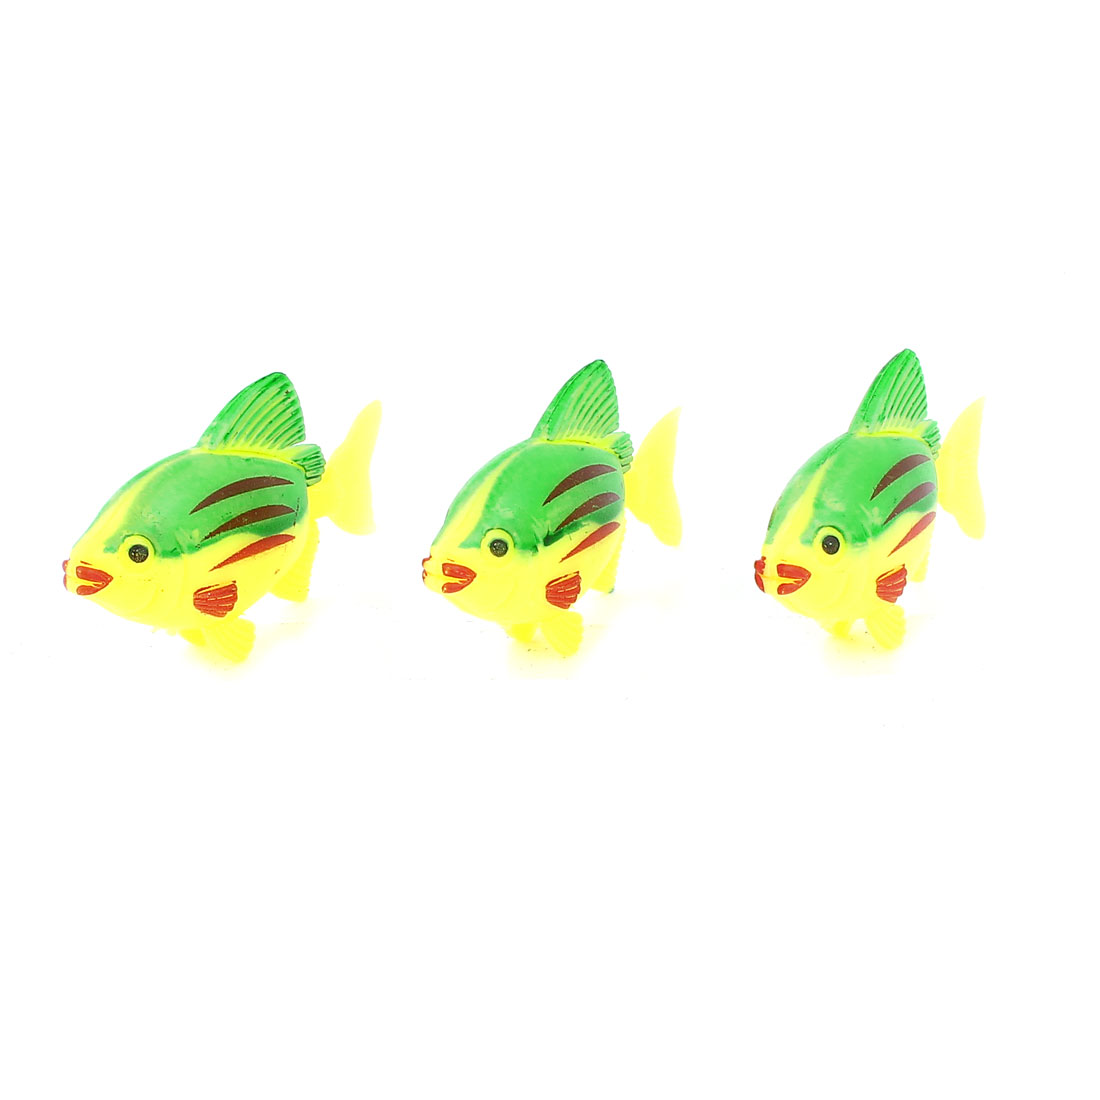 3Pcs Plastic Artificial Swing Tail Floating Fish Aquarium Decor Yellow Green